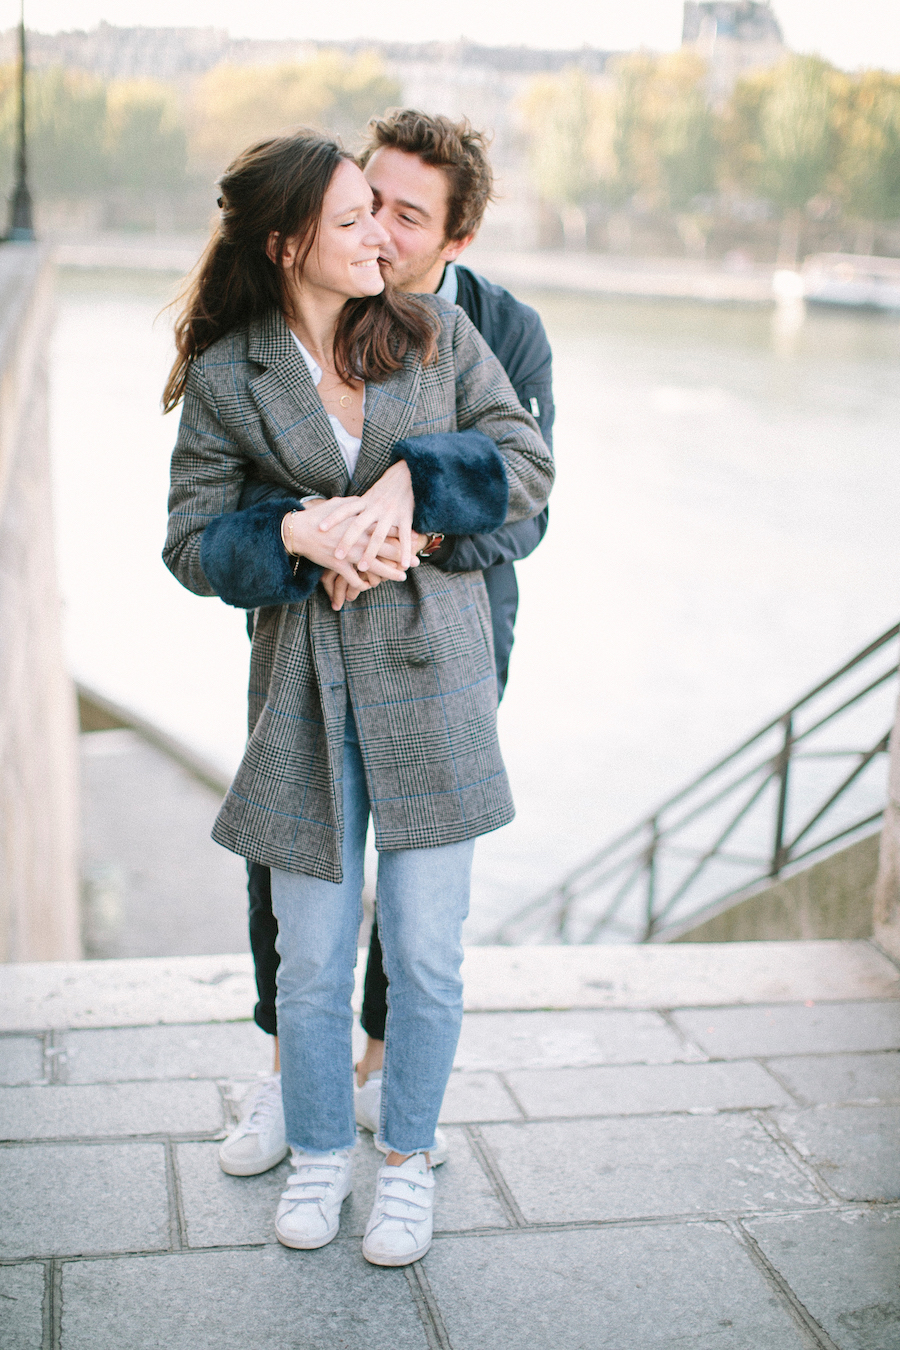 saya-photography-pre-wedding-couple-engagement-paris-ile-saint-louis-27.jpg